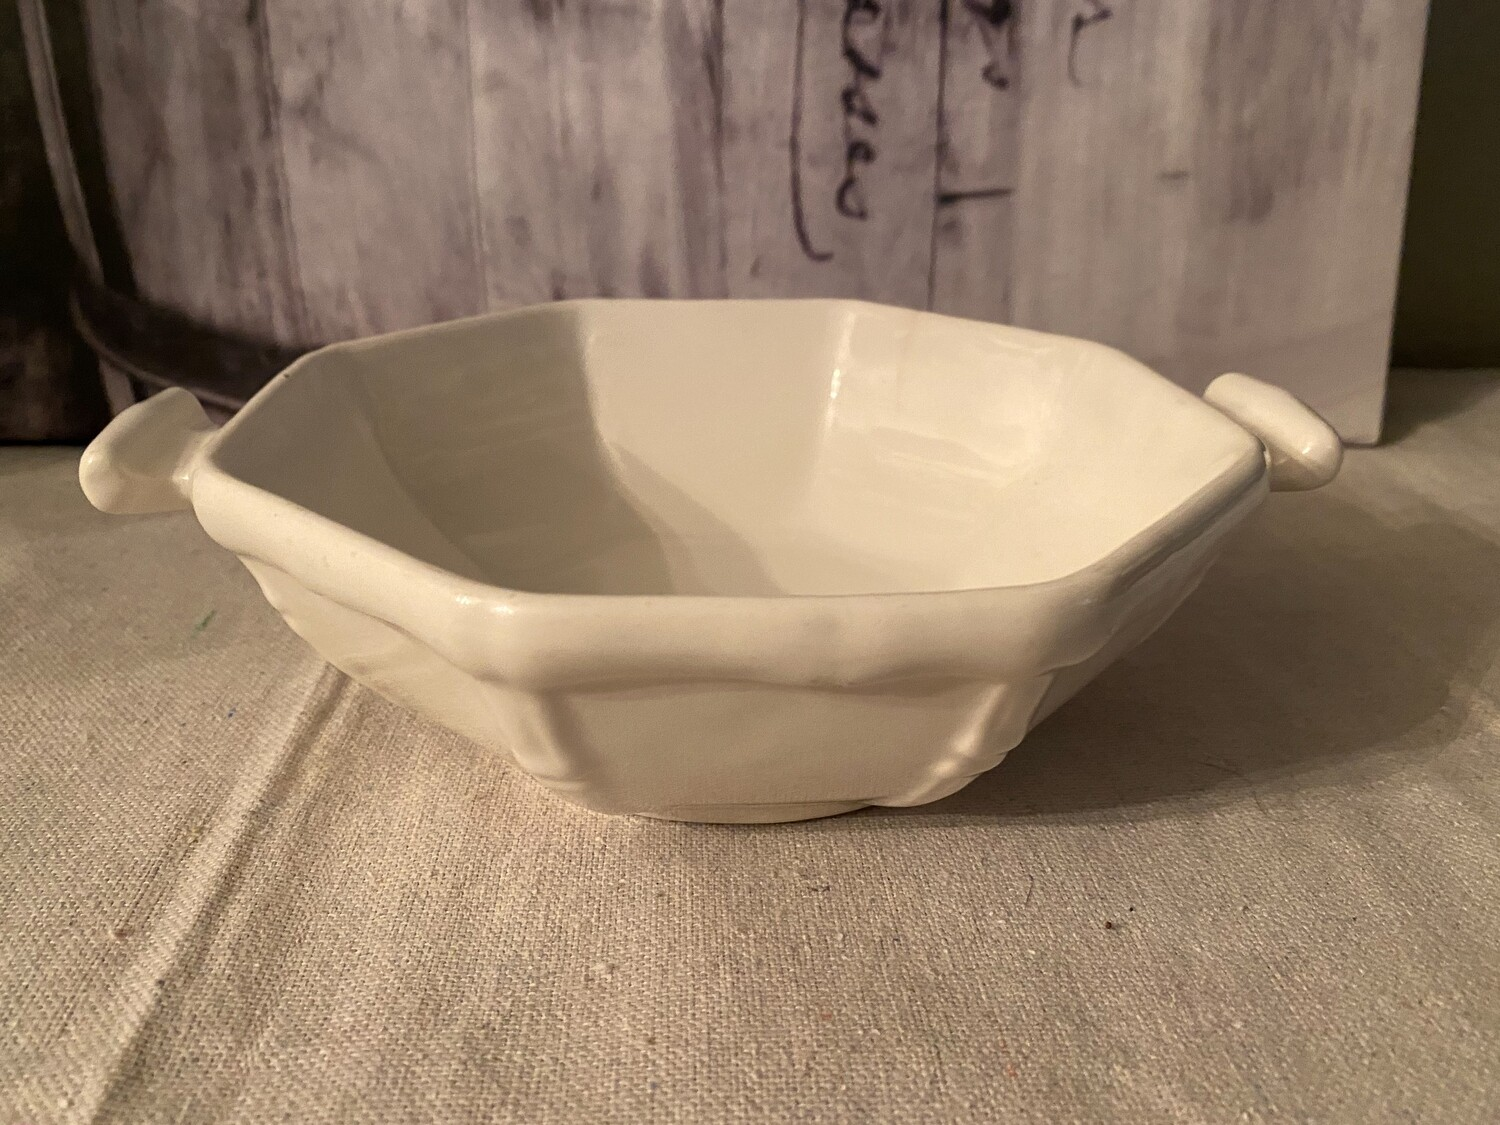 Vintage California USA Pottery Oven Proof Dish 121